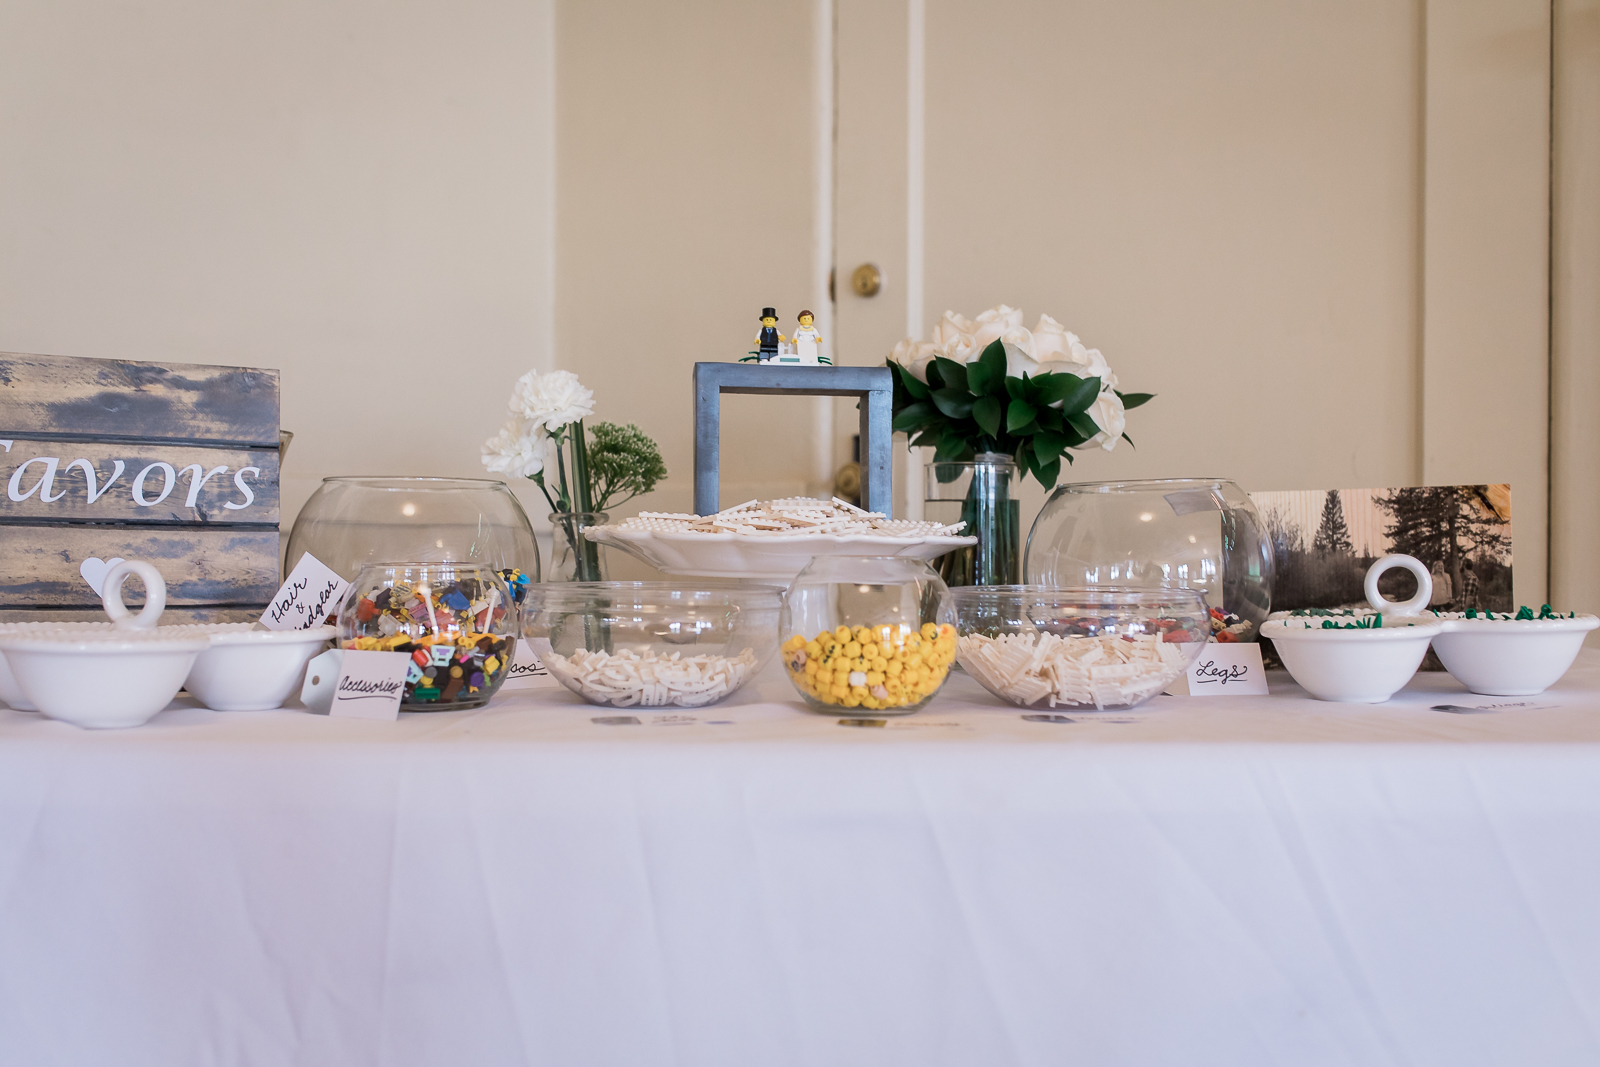 LEGO Party Favors at Wyoming Wedding